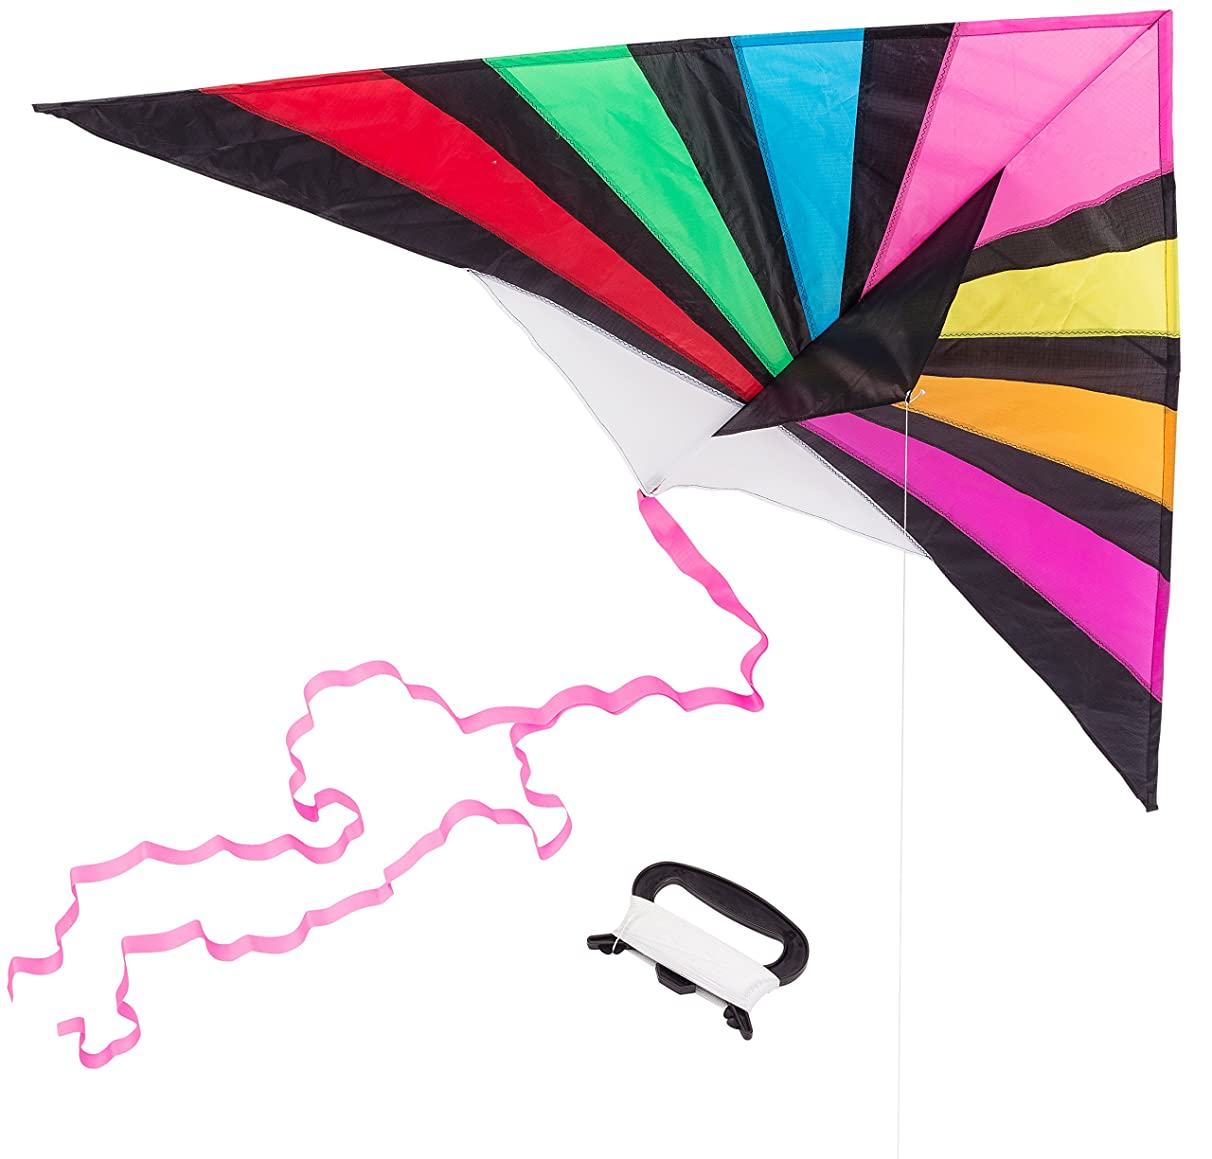 Latest Kites For kids and adults| Easy to Fly | Delta Kite Vivid Color with long Tail | 63